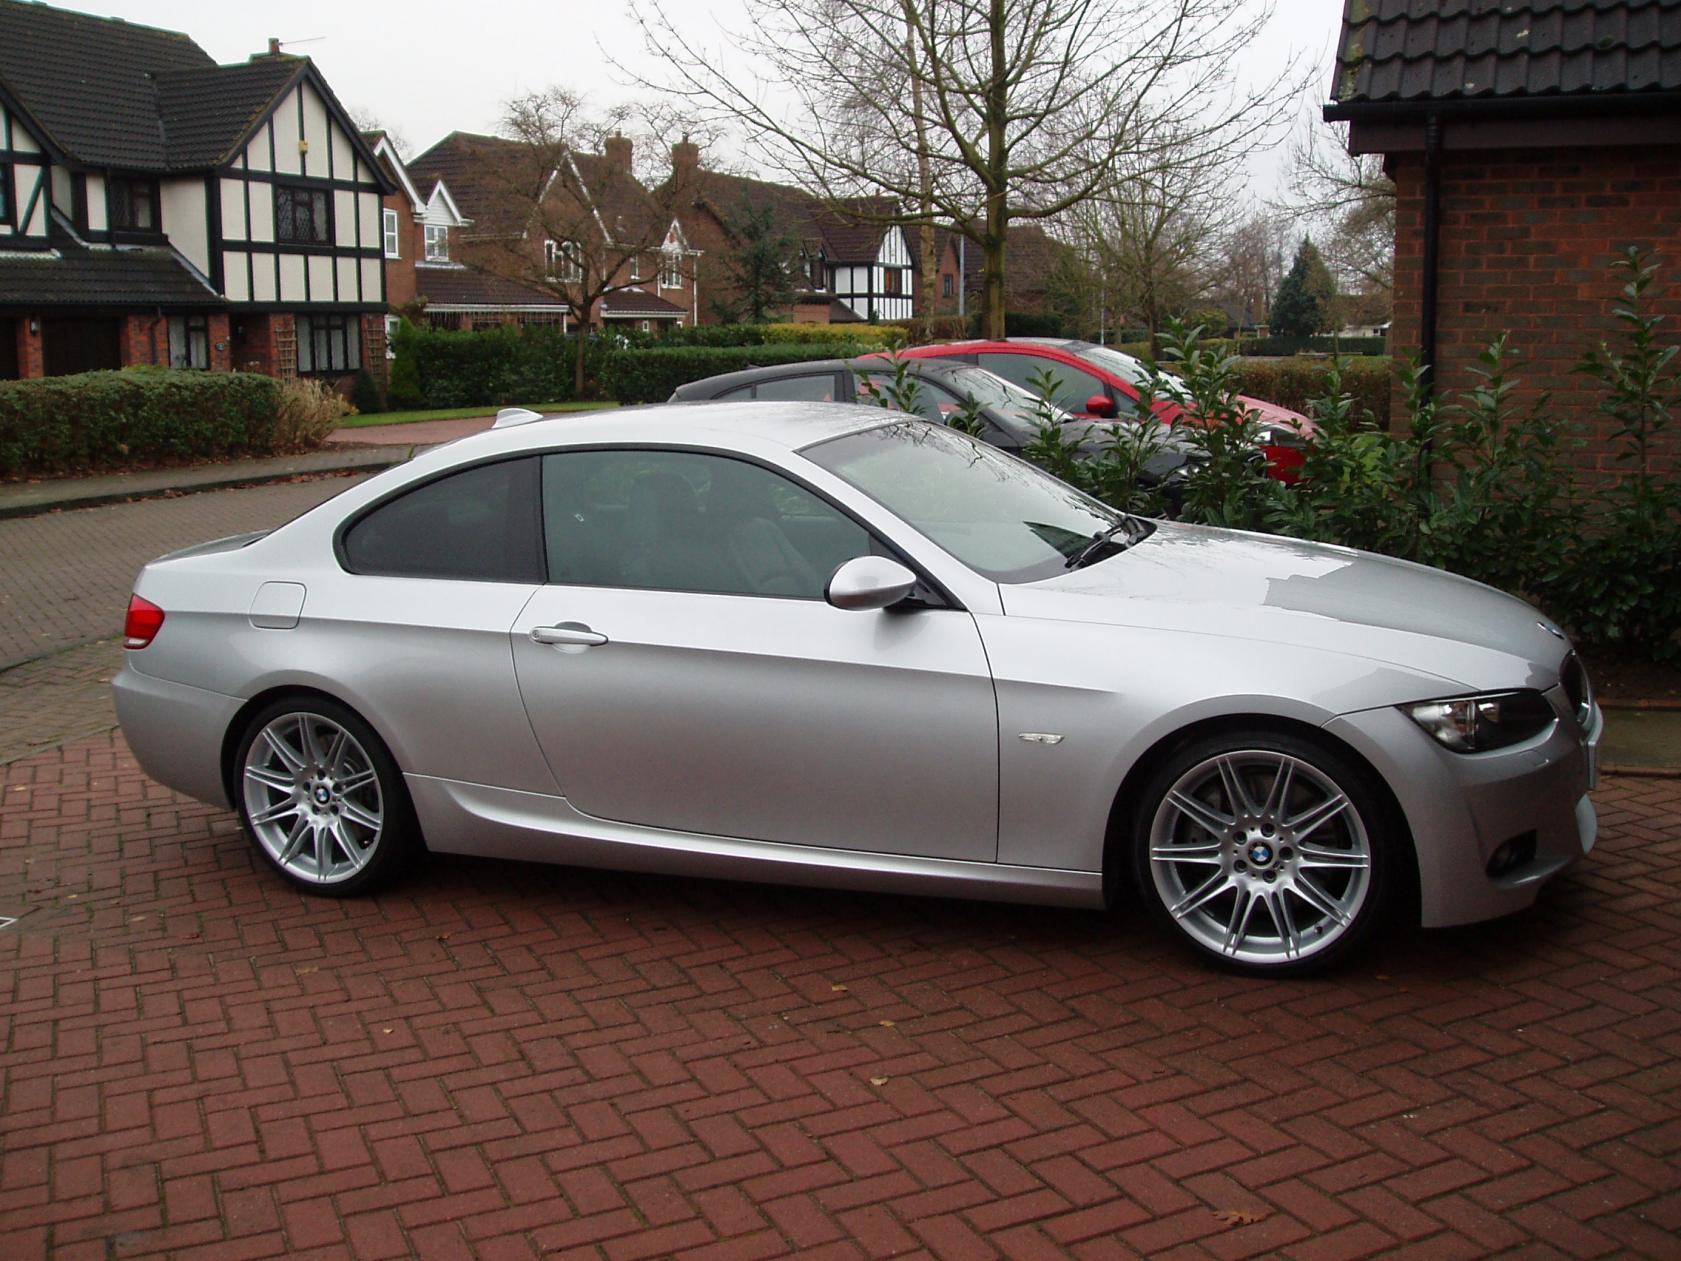 For Sale I M Sport Coupe - 335i bmw coupe for sale